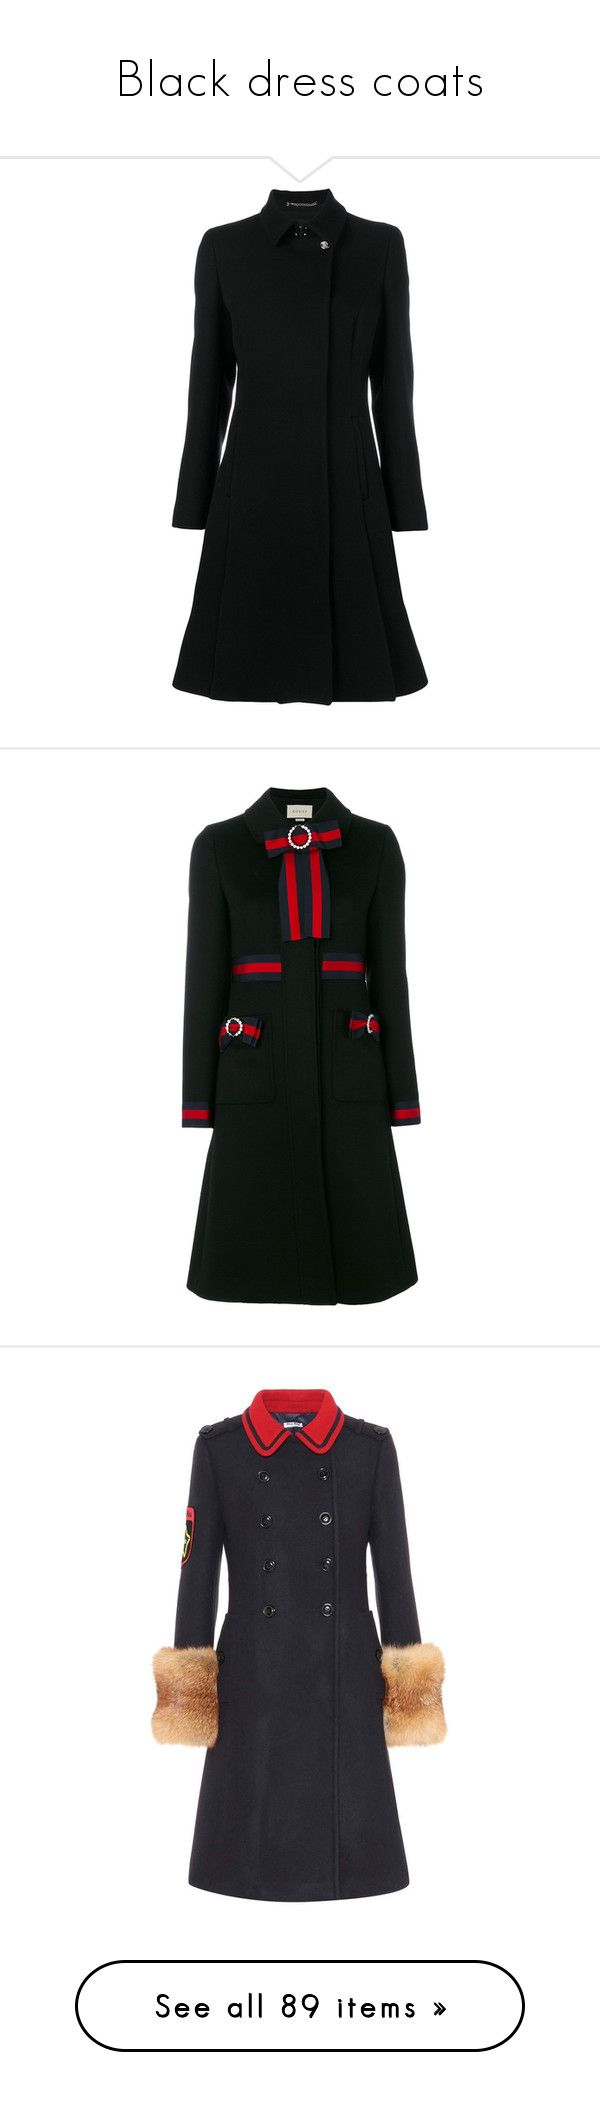 """""""Black dress coats"""" by dresslikearoyal ❤ liked on Polyvore featuring outerwear, coats, black, versace, flared coats, versace coat, flare coat, bow coat, gucci and mid length coat"""